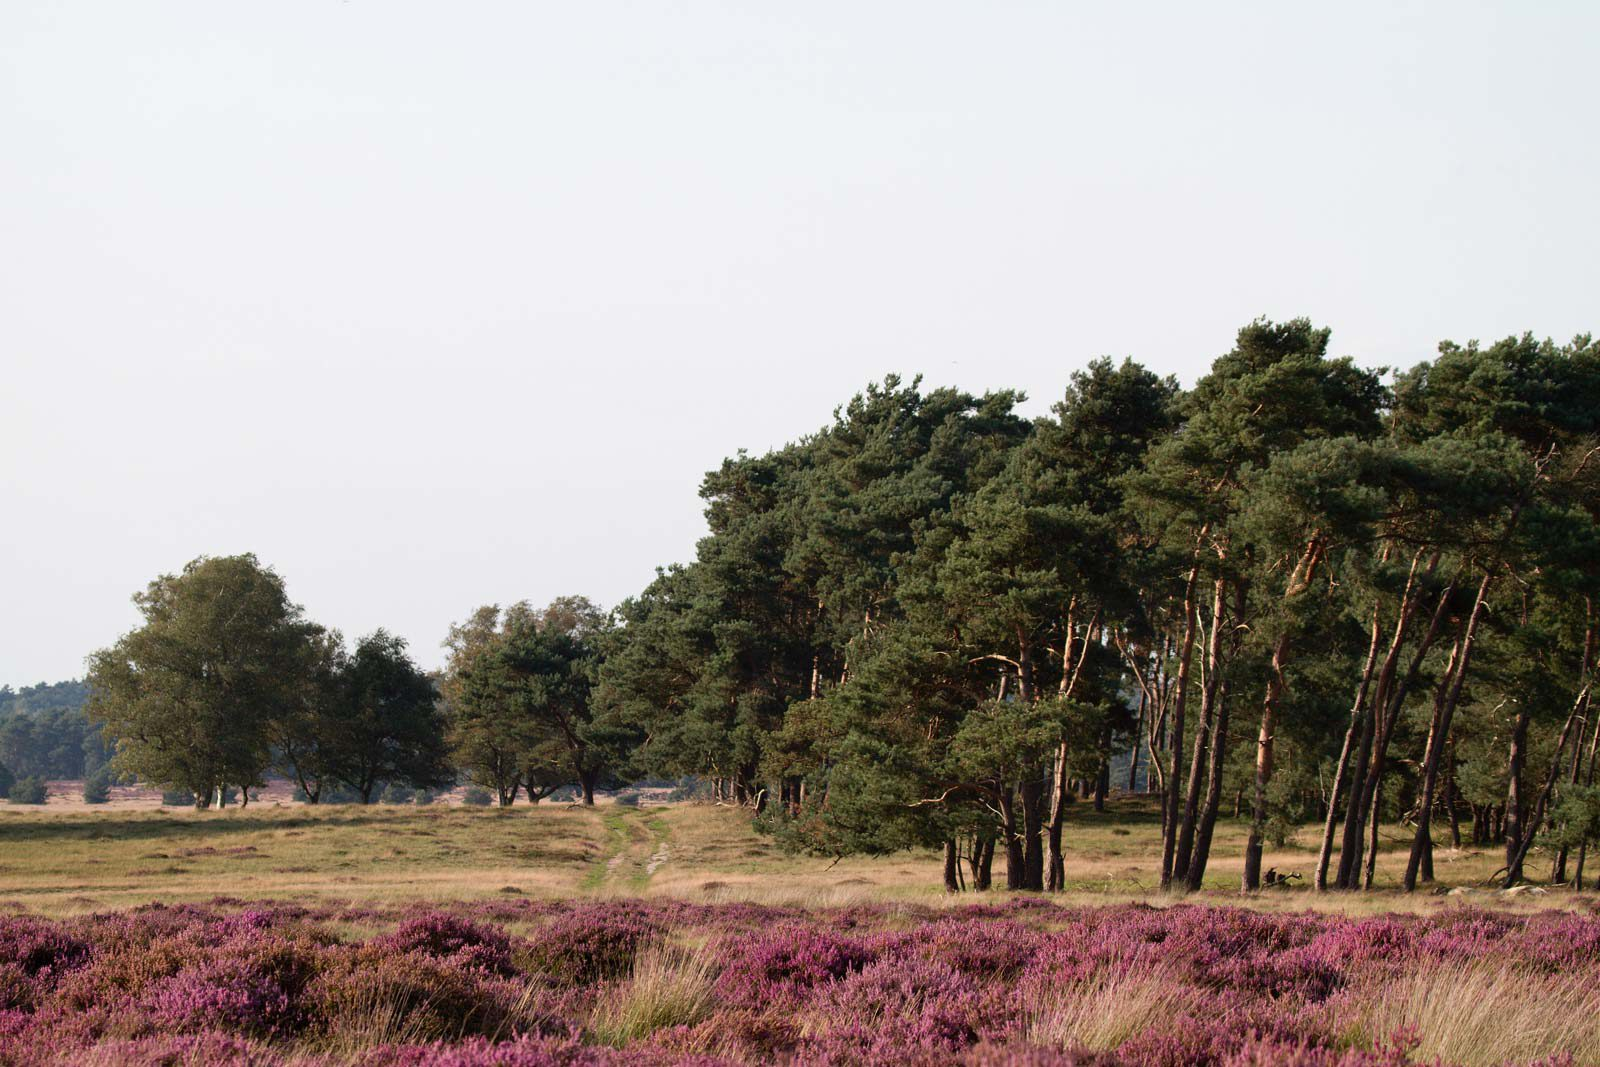 The Veluwe